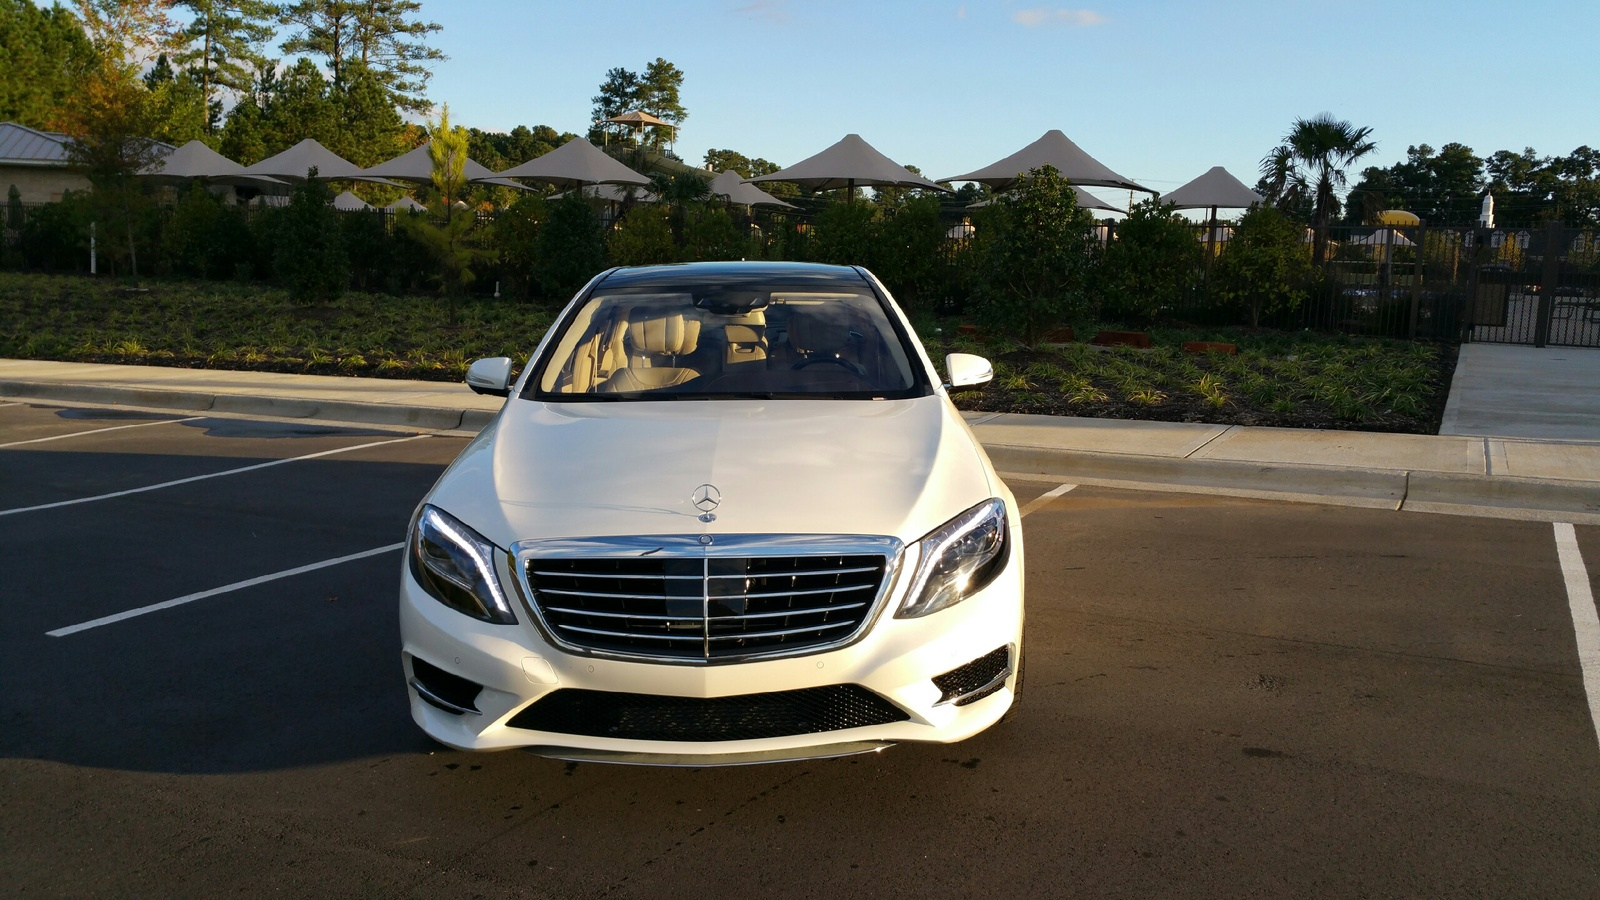 New 2015 2016 mercedes benz s class for sale cargurus for Mercedes benz s550 sale